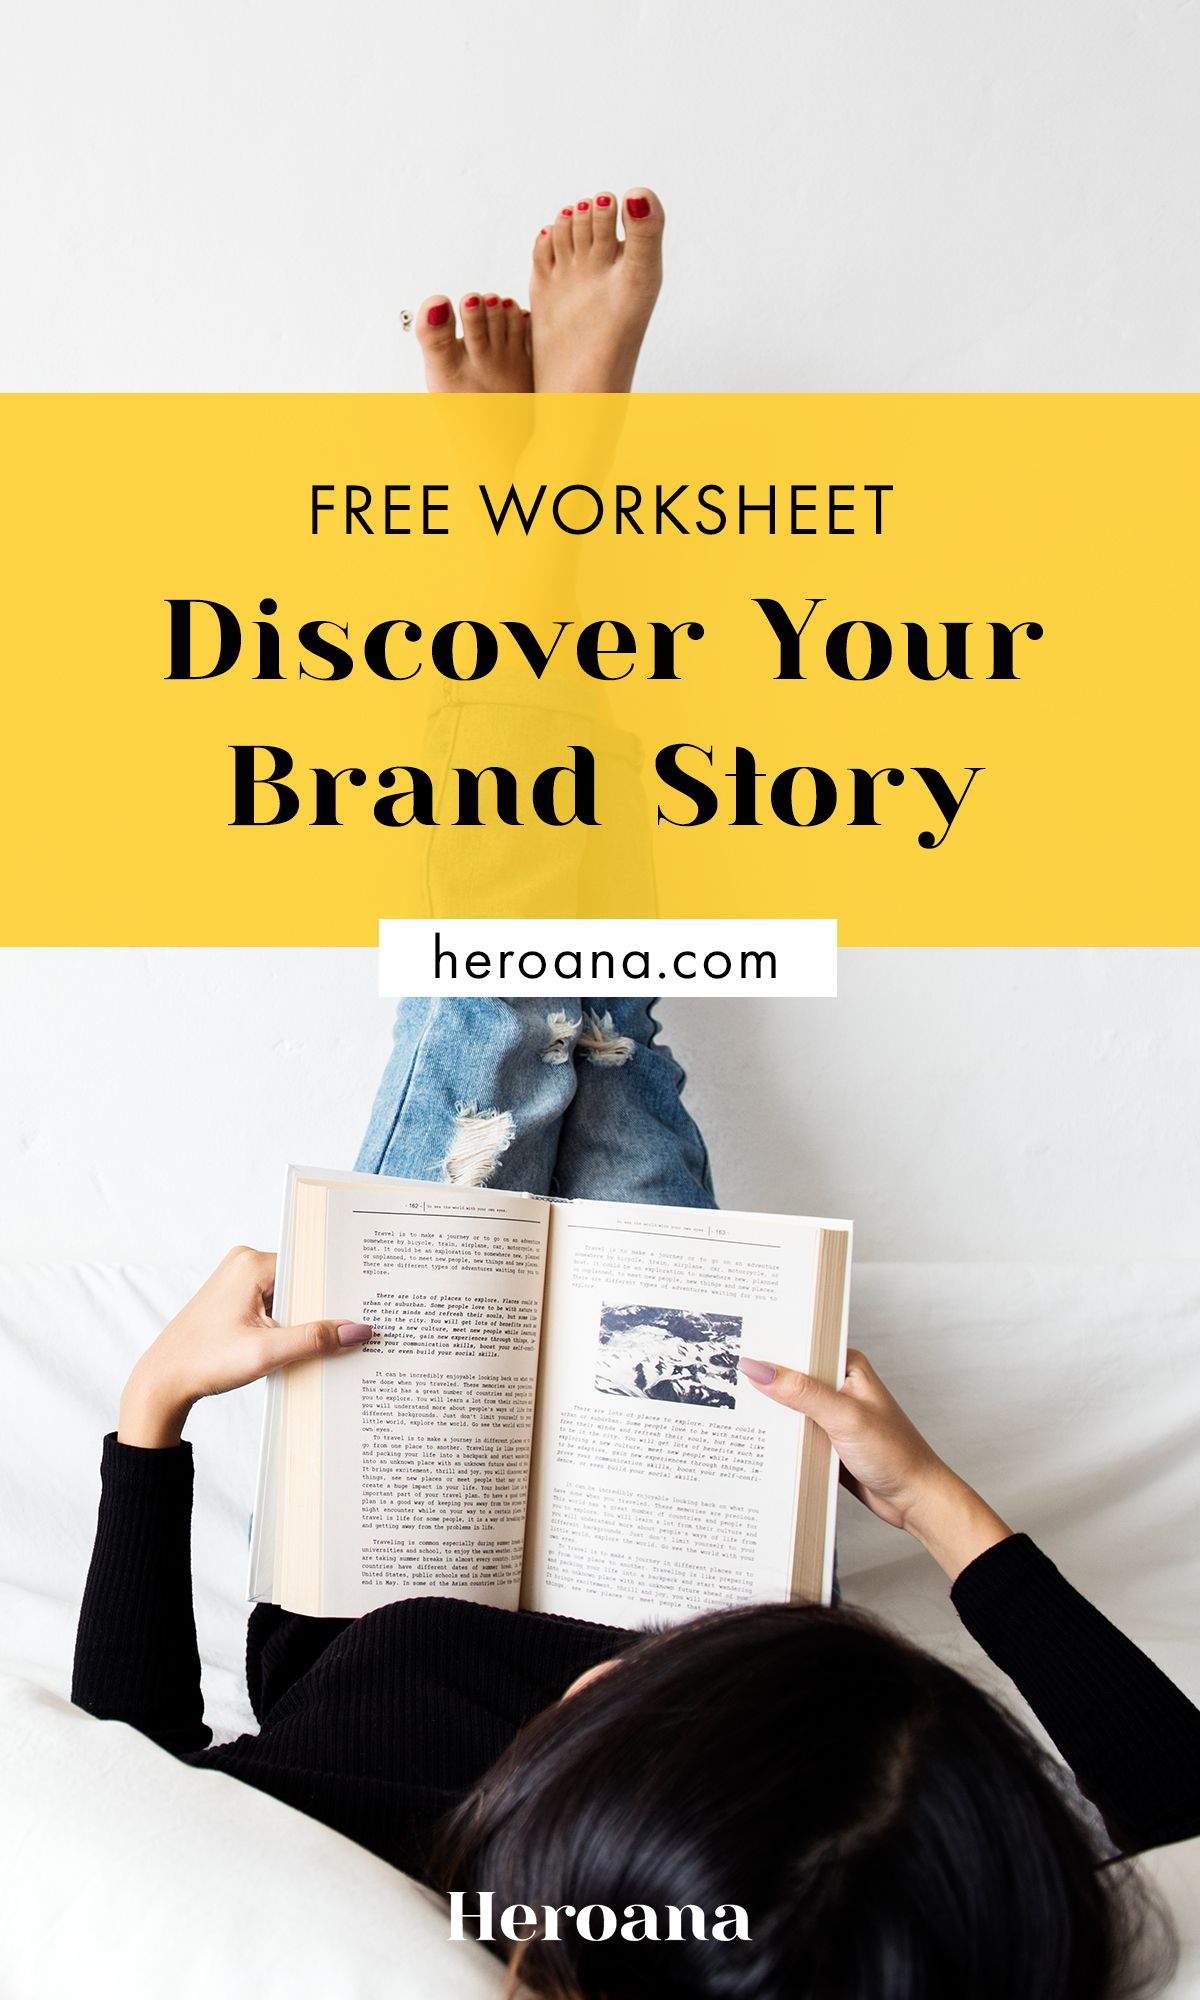 Free Worksheet Discover Your Brand Story